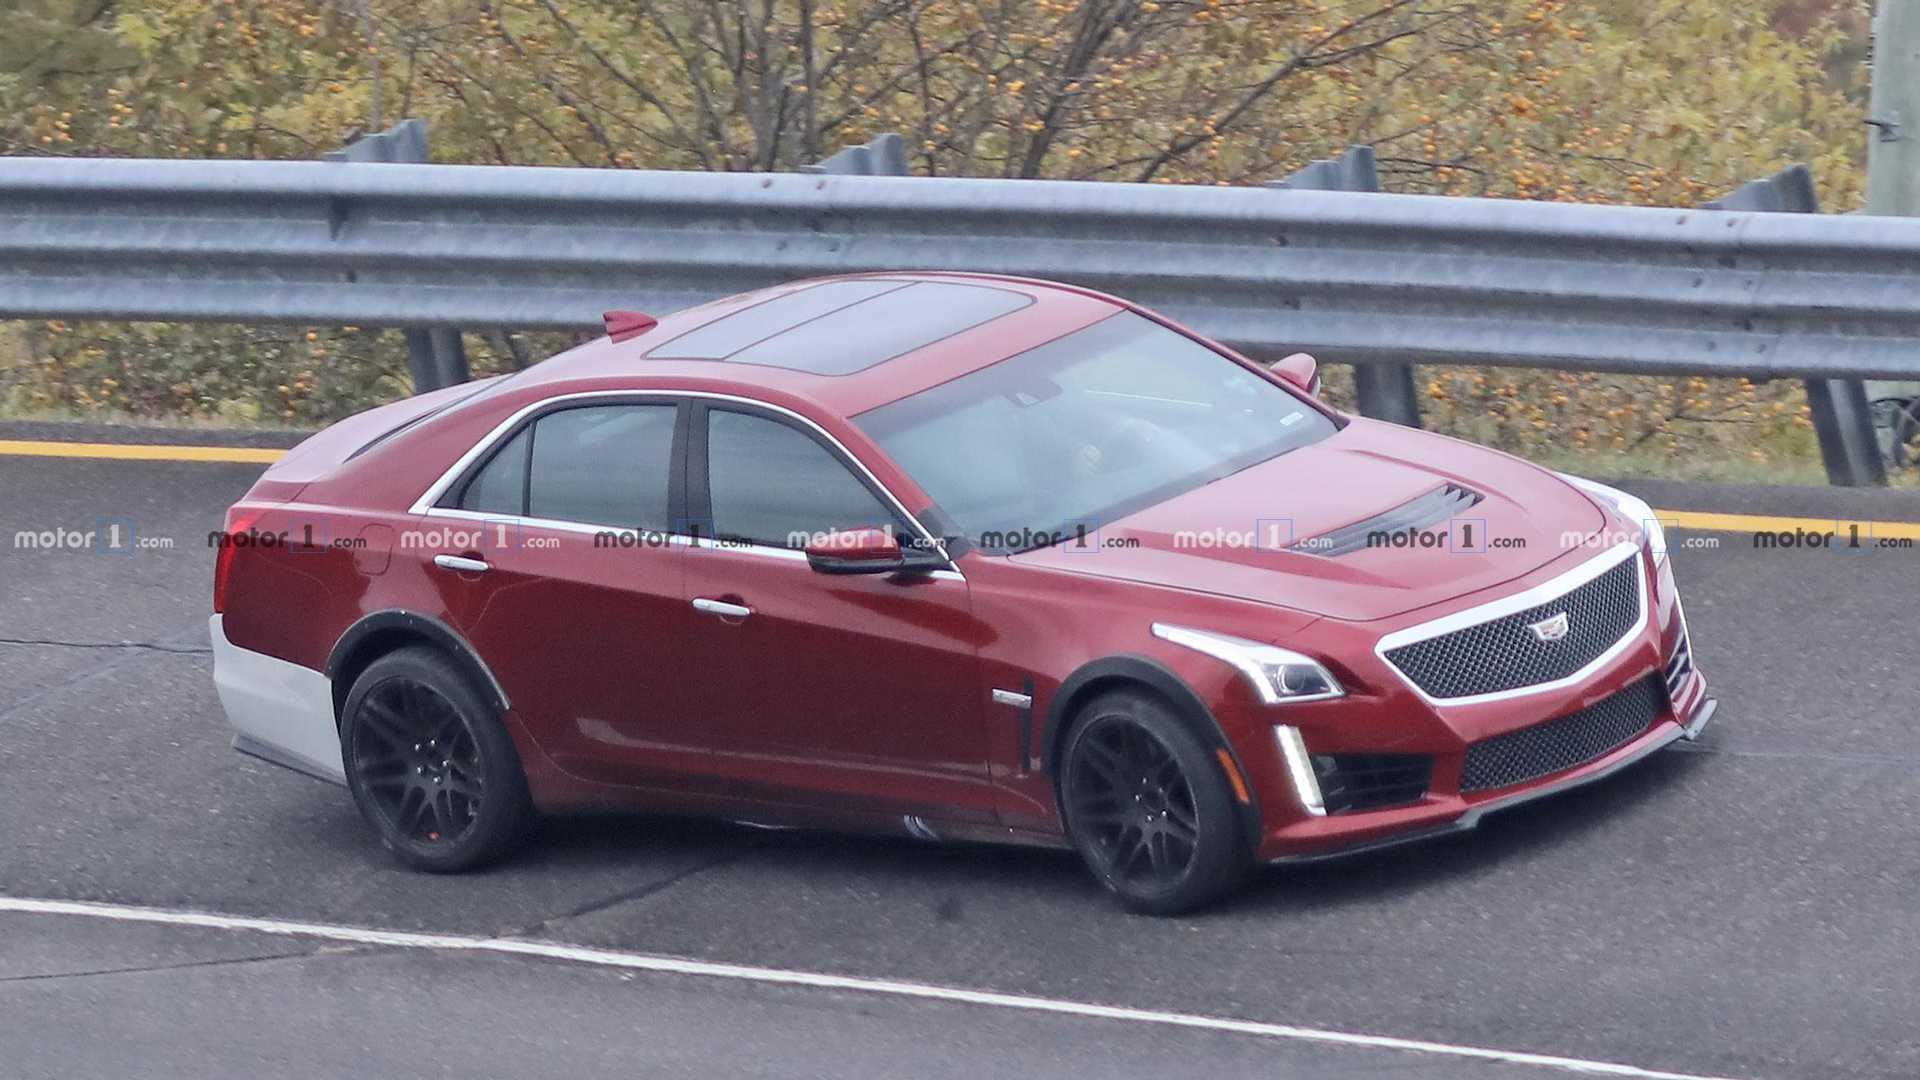 81 A Cadillac Ats V 2020 Redesign And Review